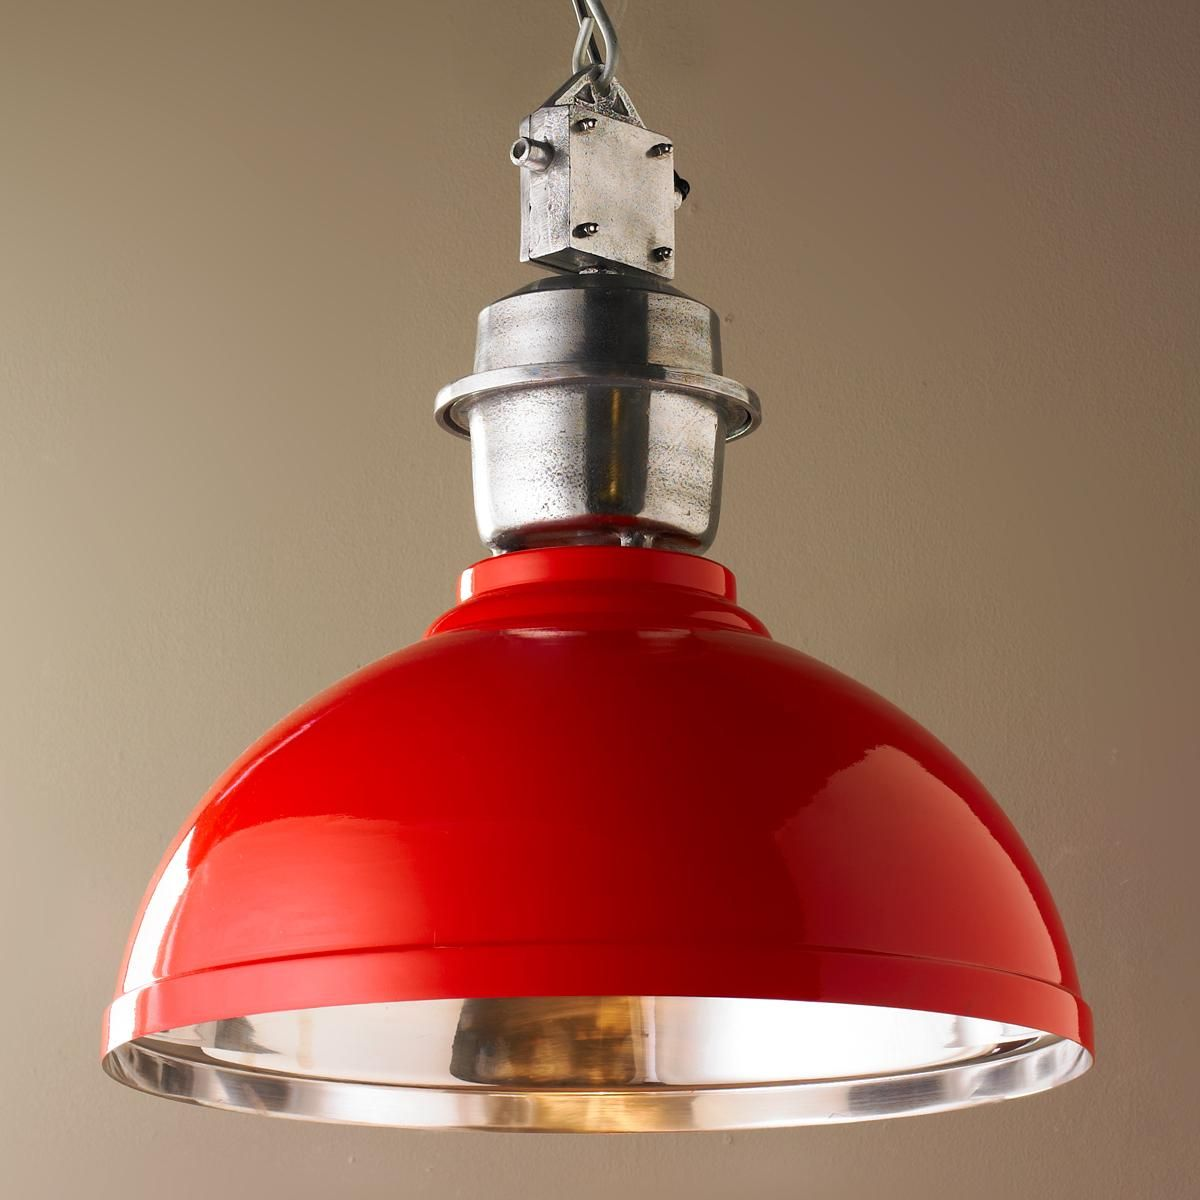 red kitchen light shades blanco sinks stainless steel industrial enameled shade warehouse pendant large